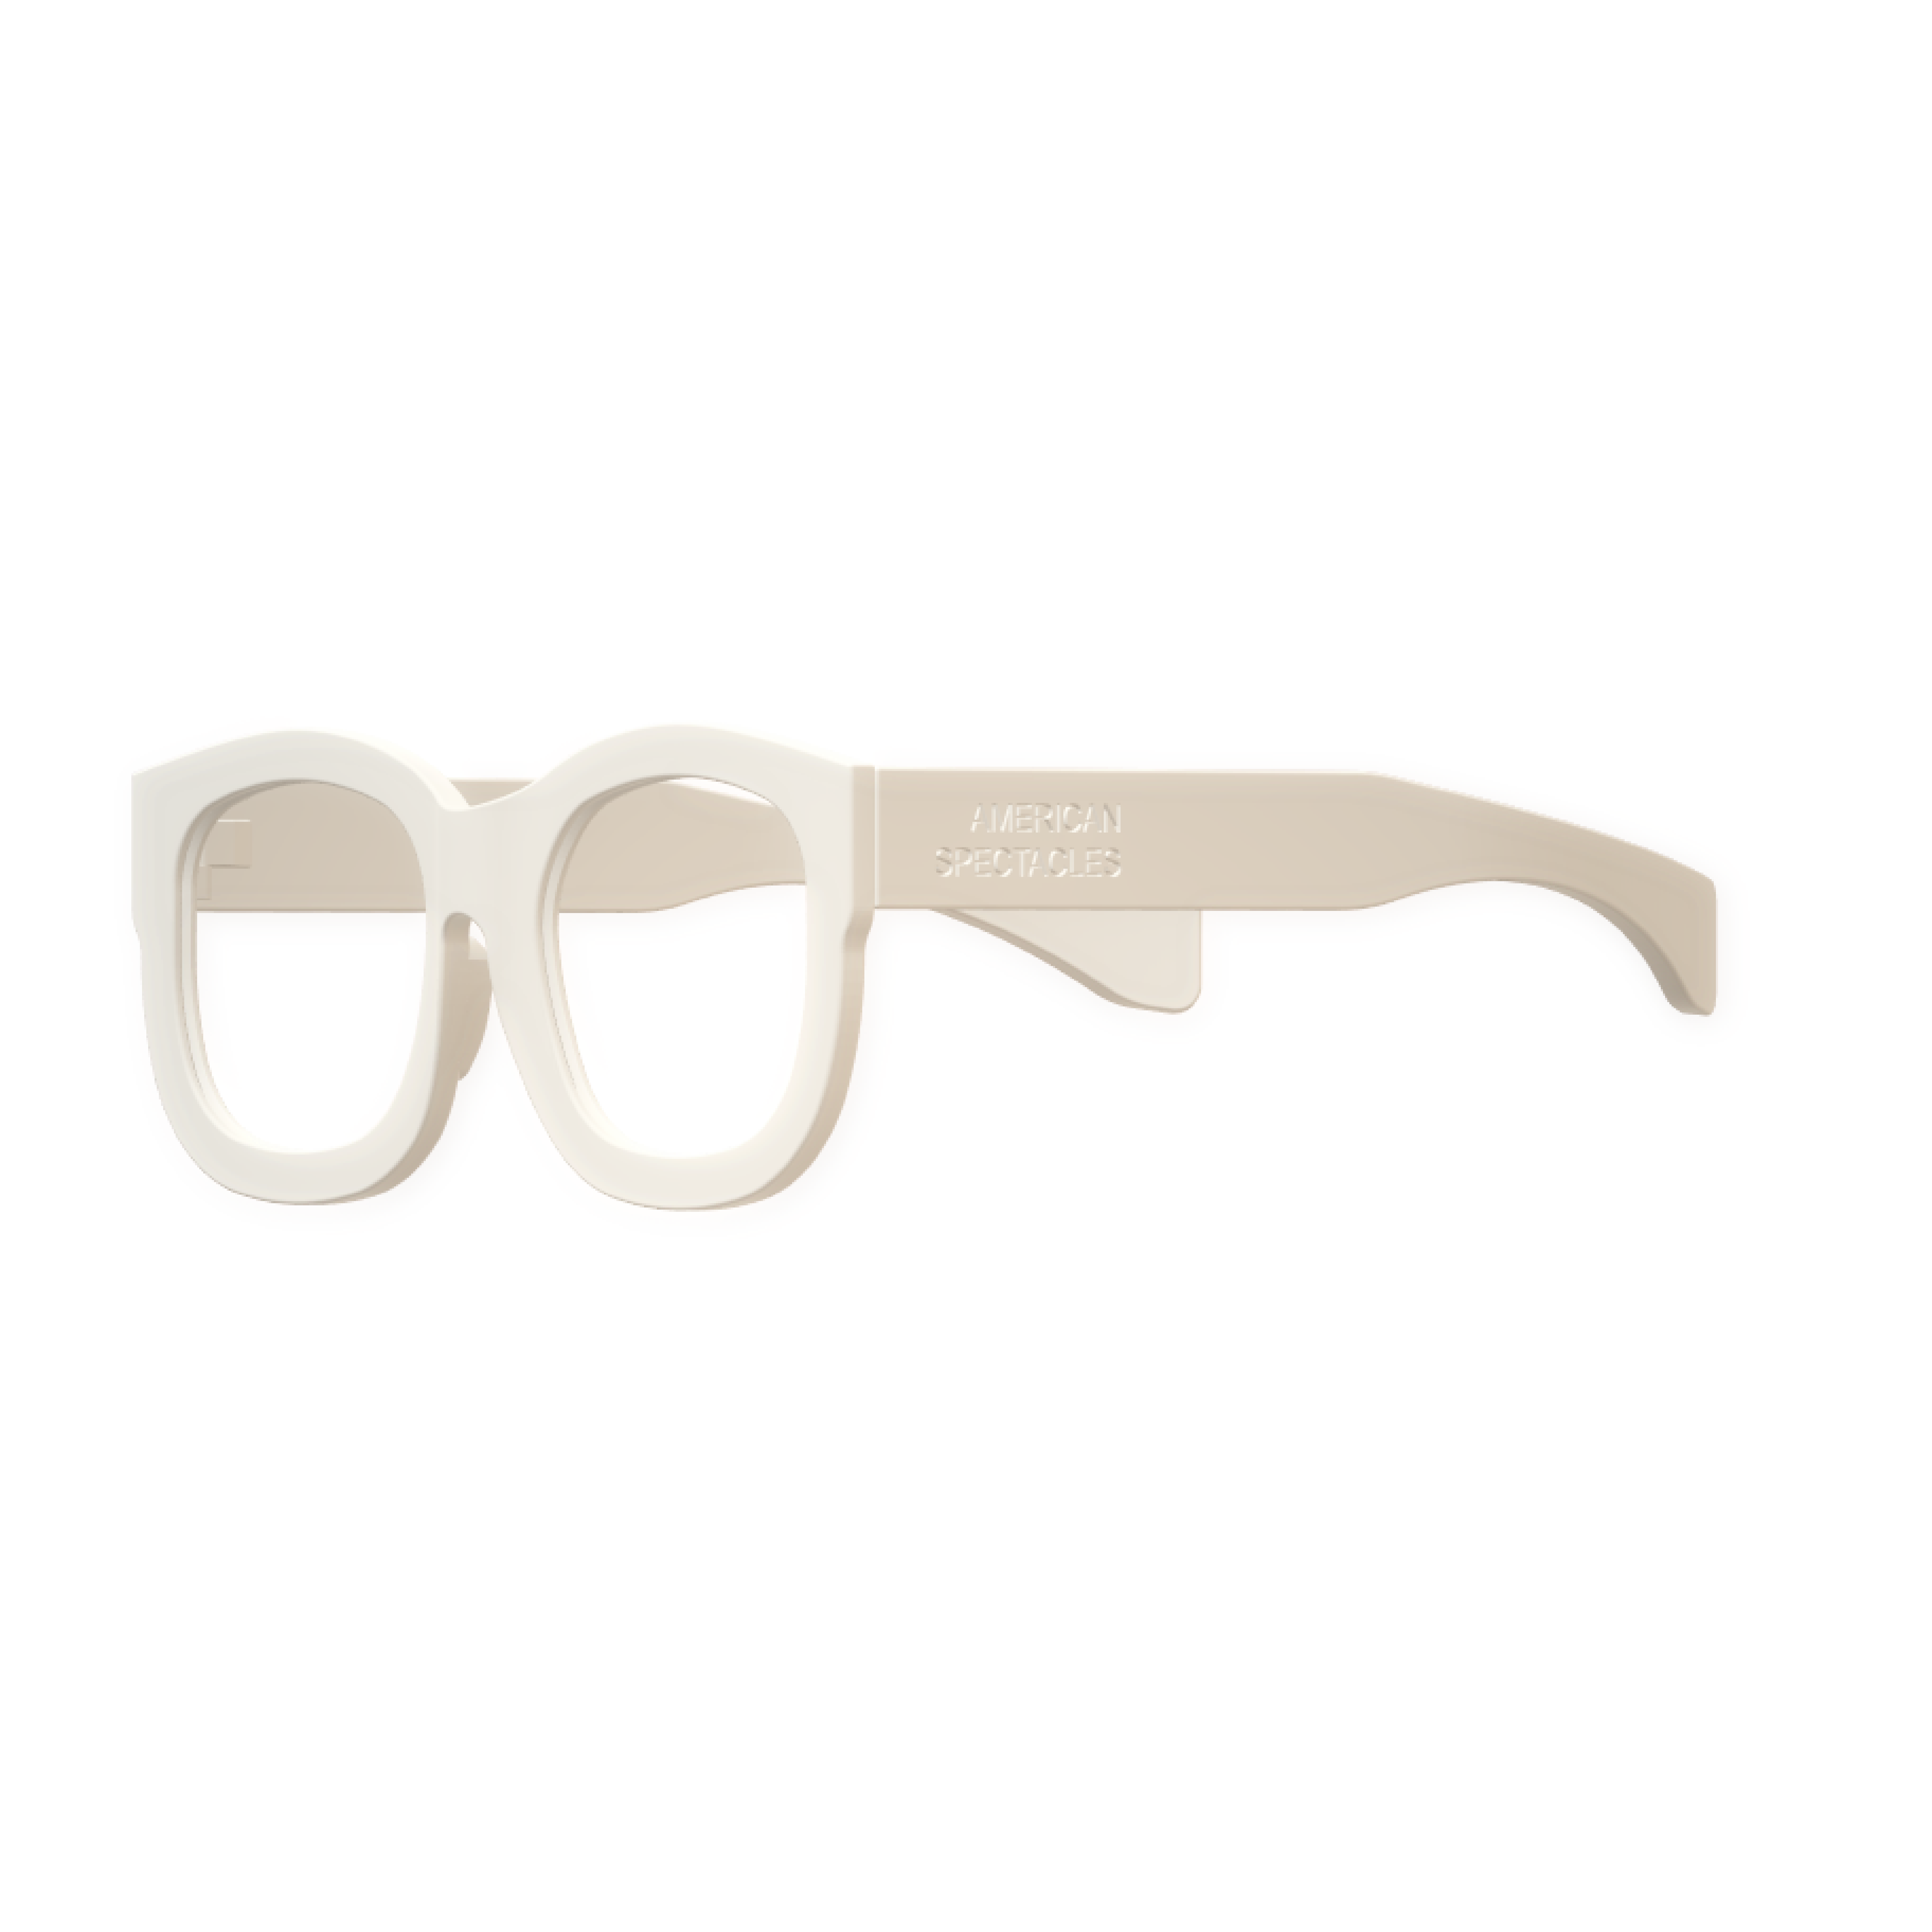 1d67ab151f74 The Model 02 is designed in a traditional wayfarer-shape silhouette. These 3D  printed